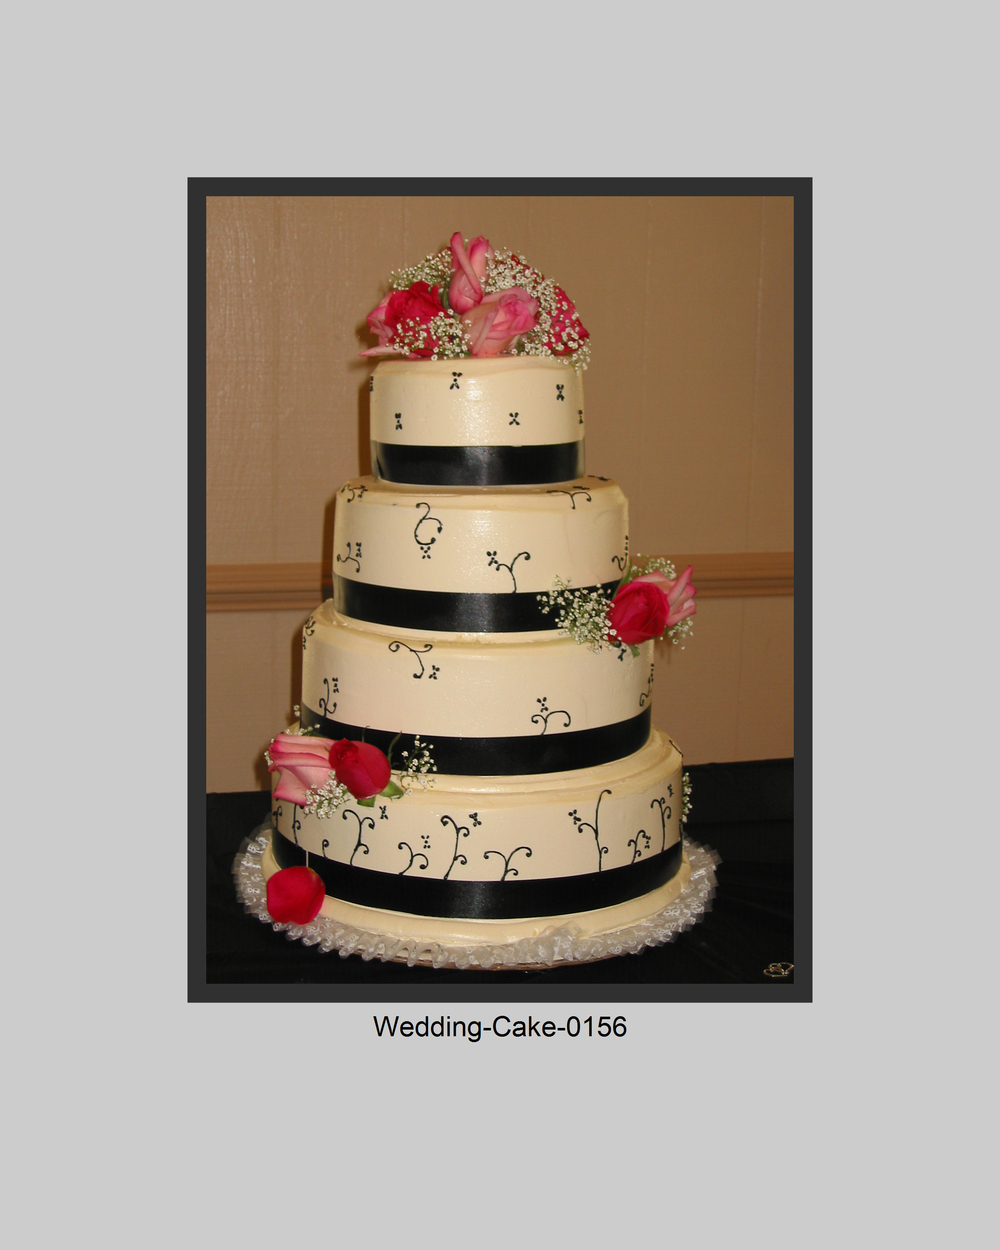 Wedding-Cake-Prints-0156.jpg